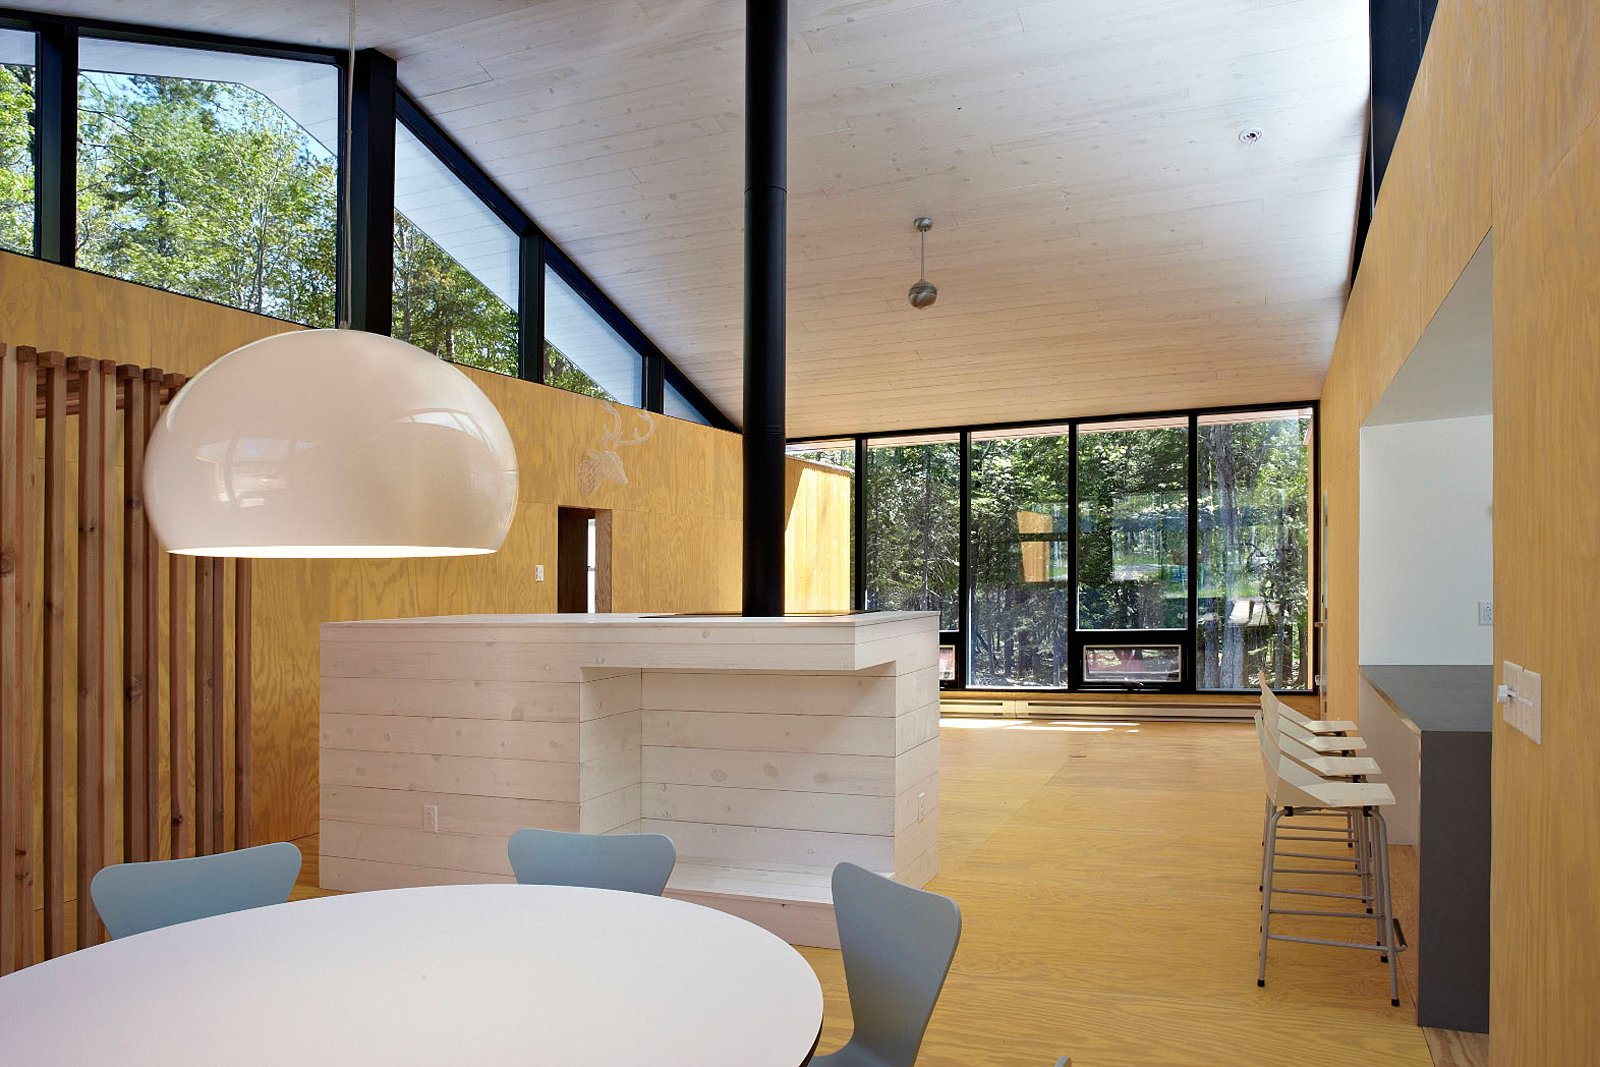 In the naturally lit central living space, stained plywood is used for the walls and flooring. The interior boasts high ceilings, a wood-burning fireplace, and a dining table by Robert Ewert Designs.  Blu Dot Spotted by Blu Dot from Superior Logic